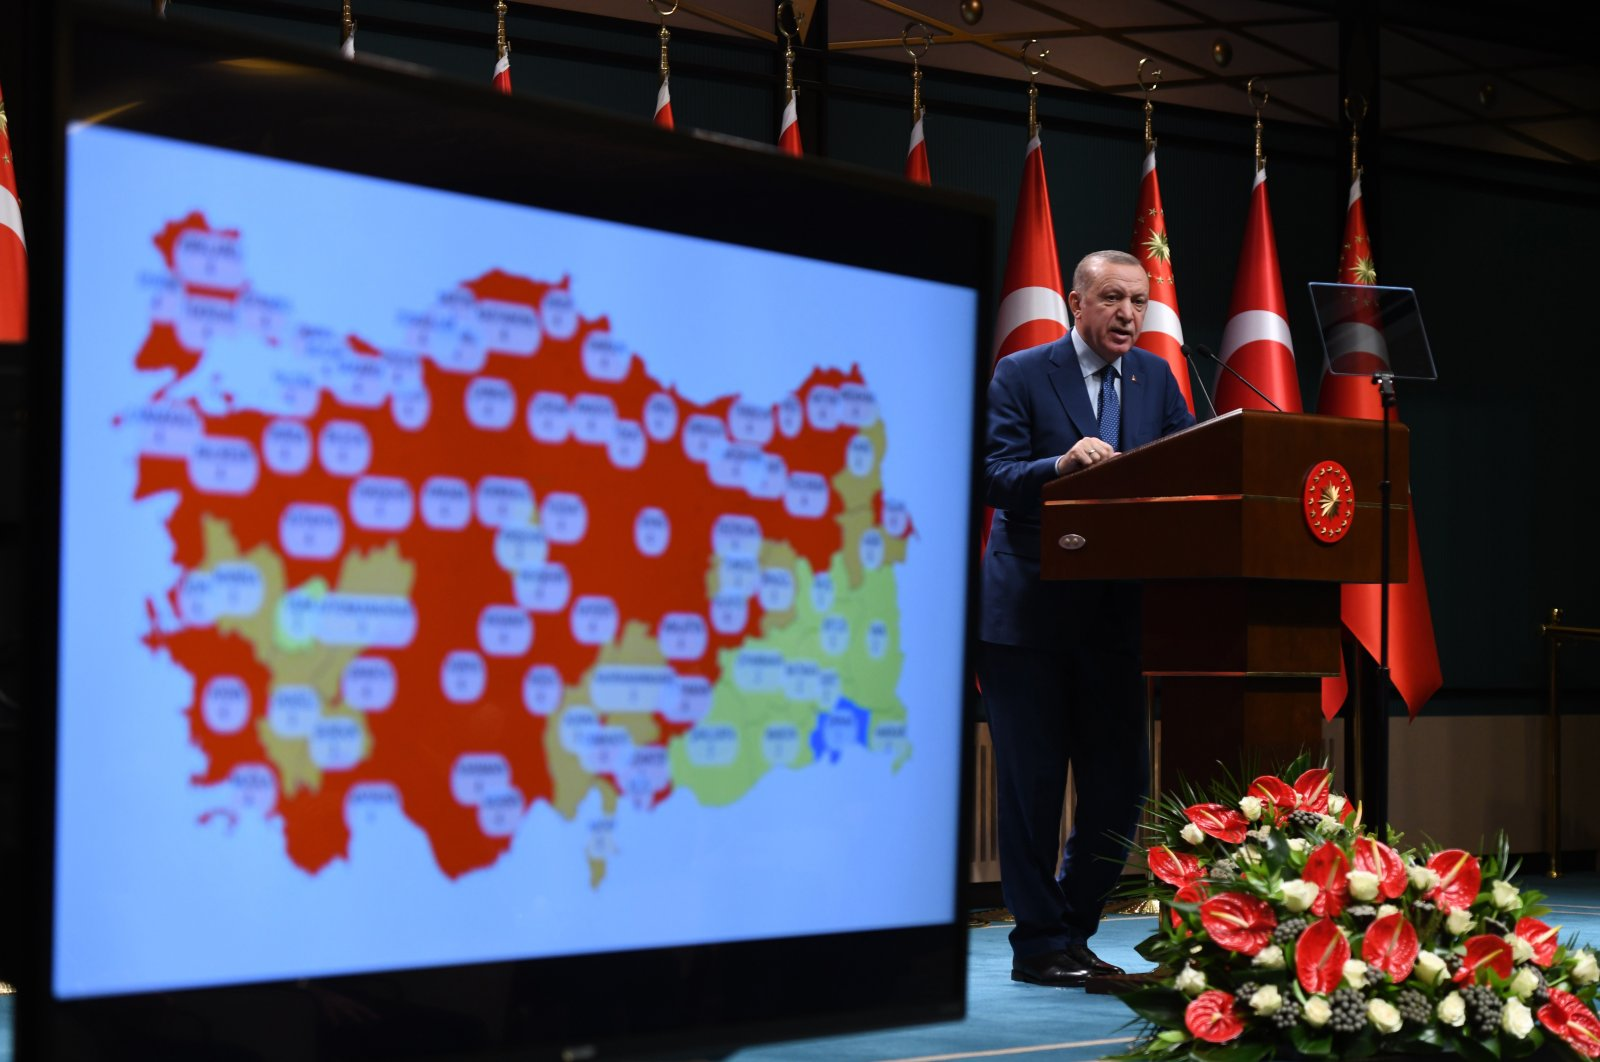 A color-coded map on the current state of the coronavirus pandemic in Turkey is seen alongside President Recep Tayyip Erdoğan, who is speaking during a press conference in the Presidential Complex in Ankara, Turkey, March 29, 2021. (IHA Photo)